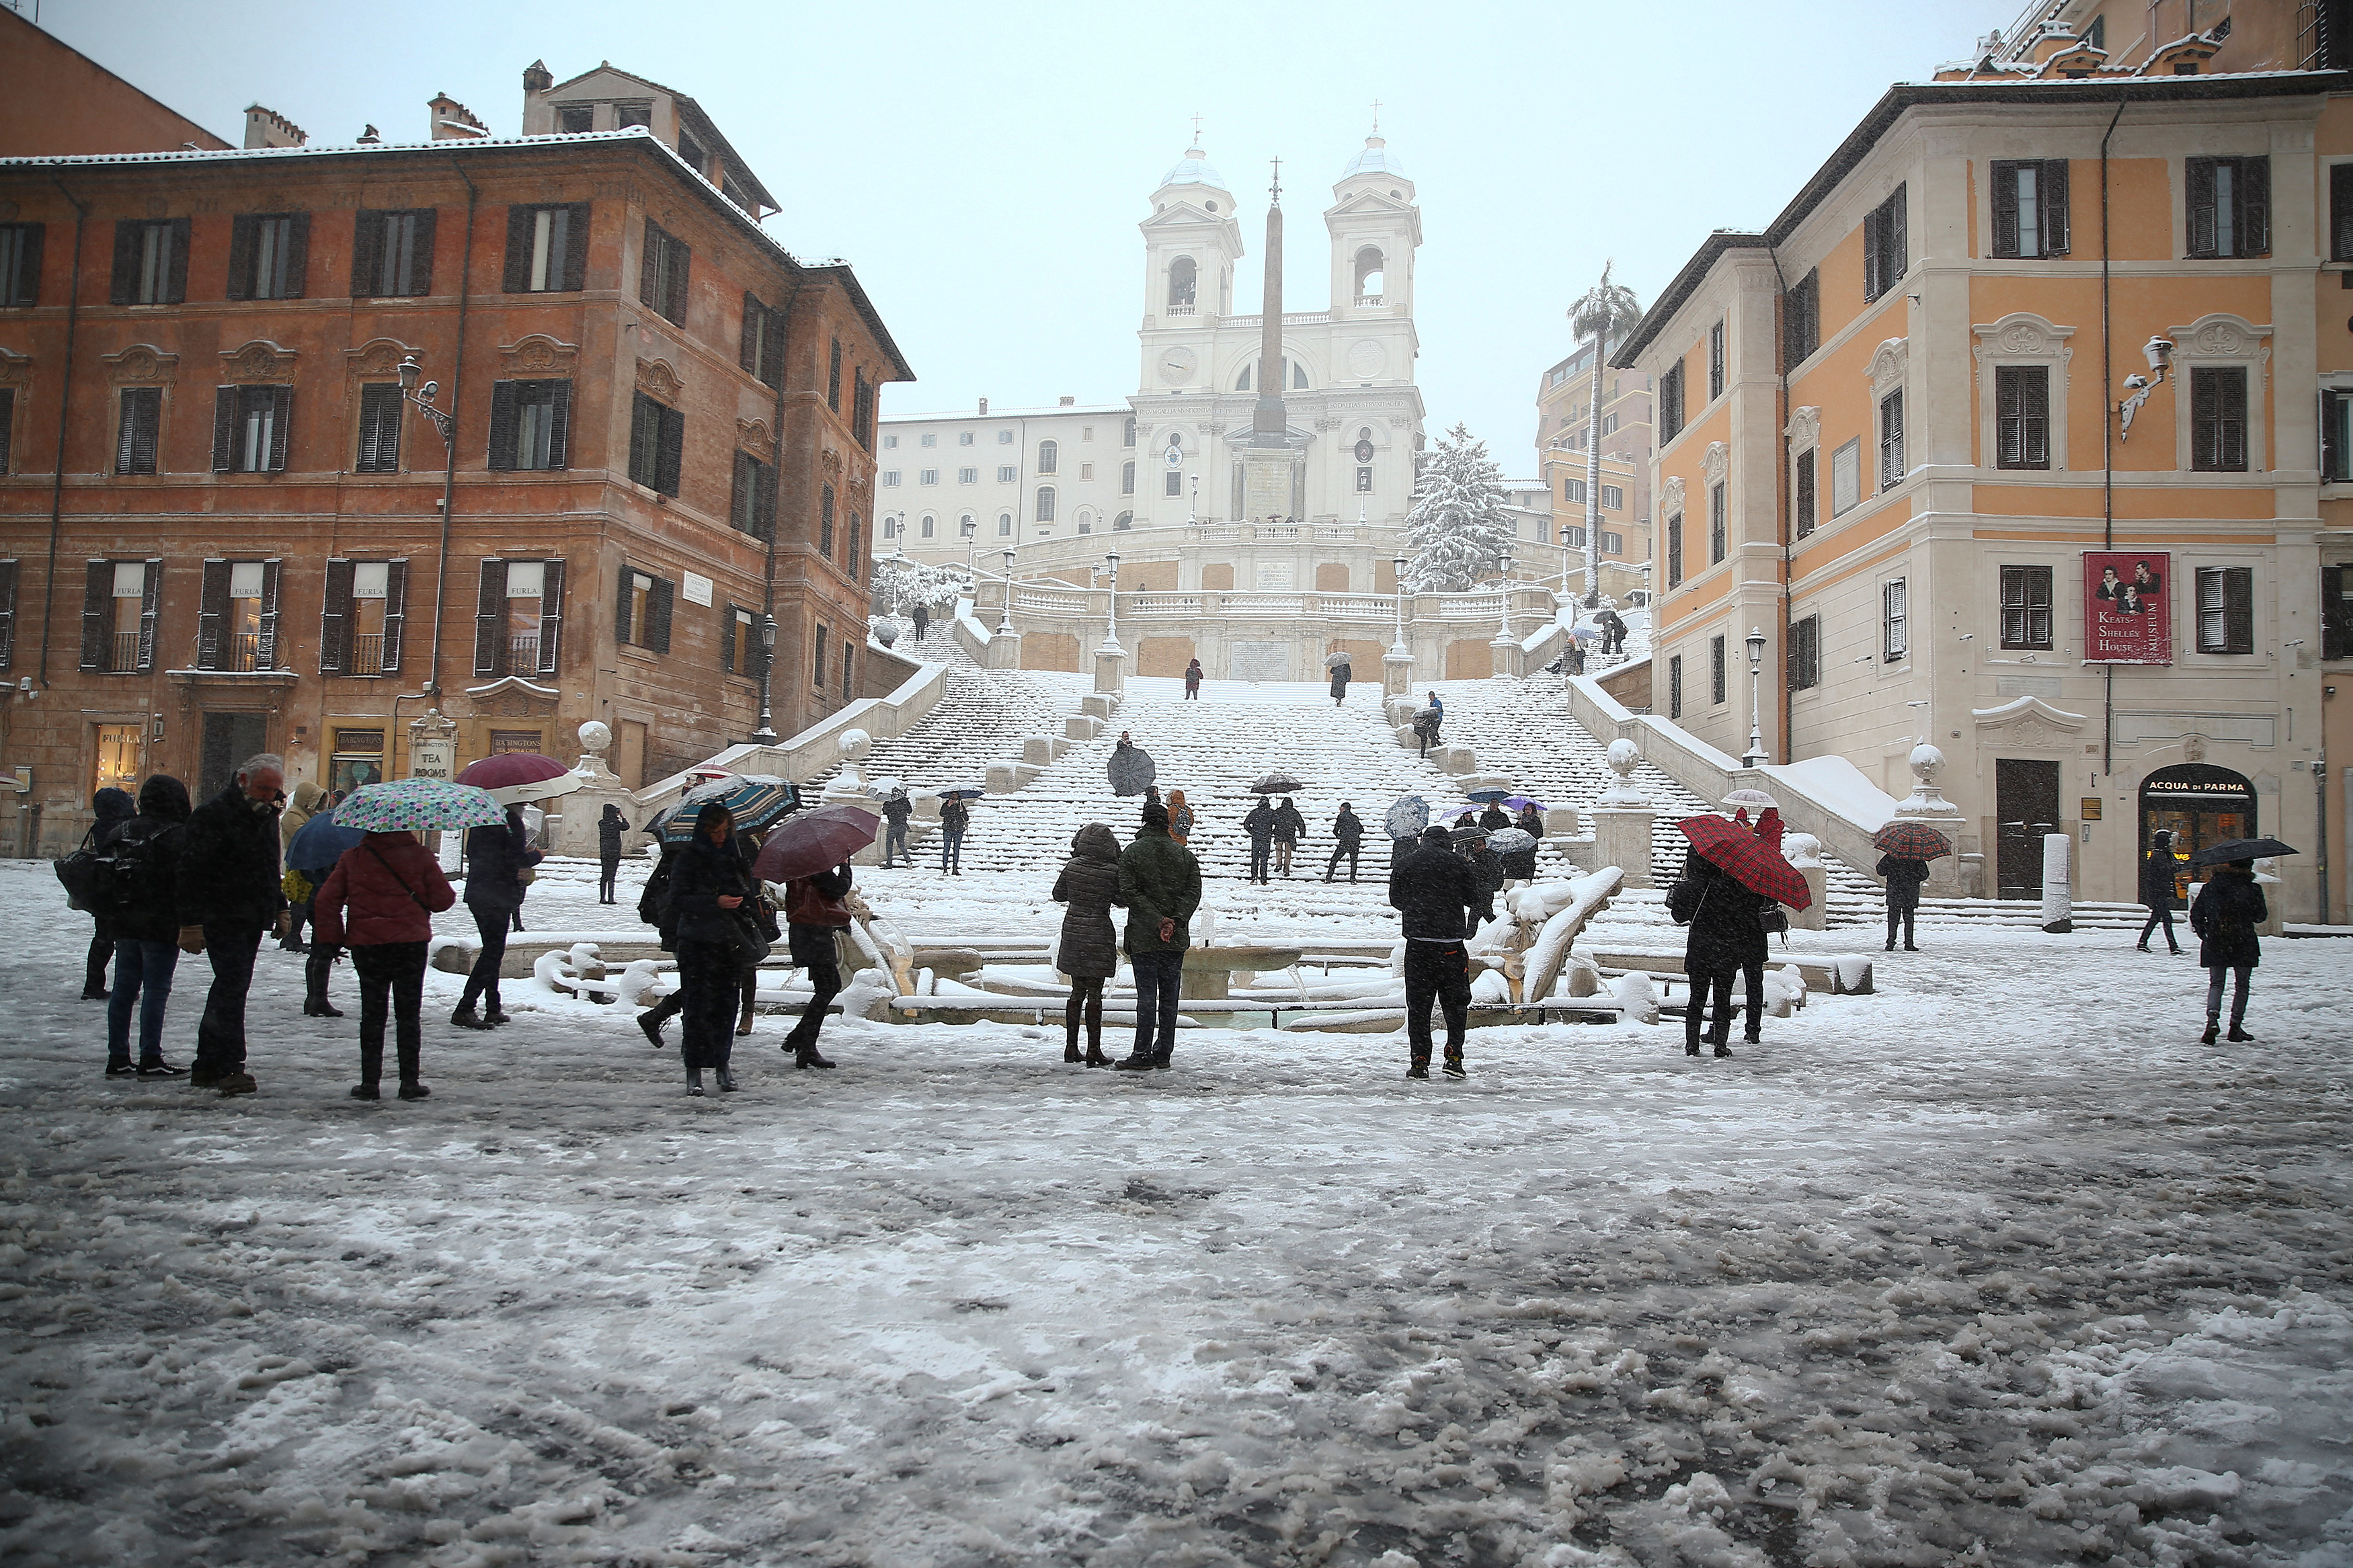 Spanish Steps are seen during a heavy snowfall in Rome, Italy February 26, 2018. REUTERS/Alessandro Bianchi